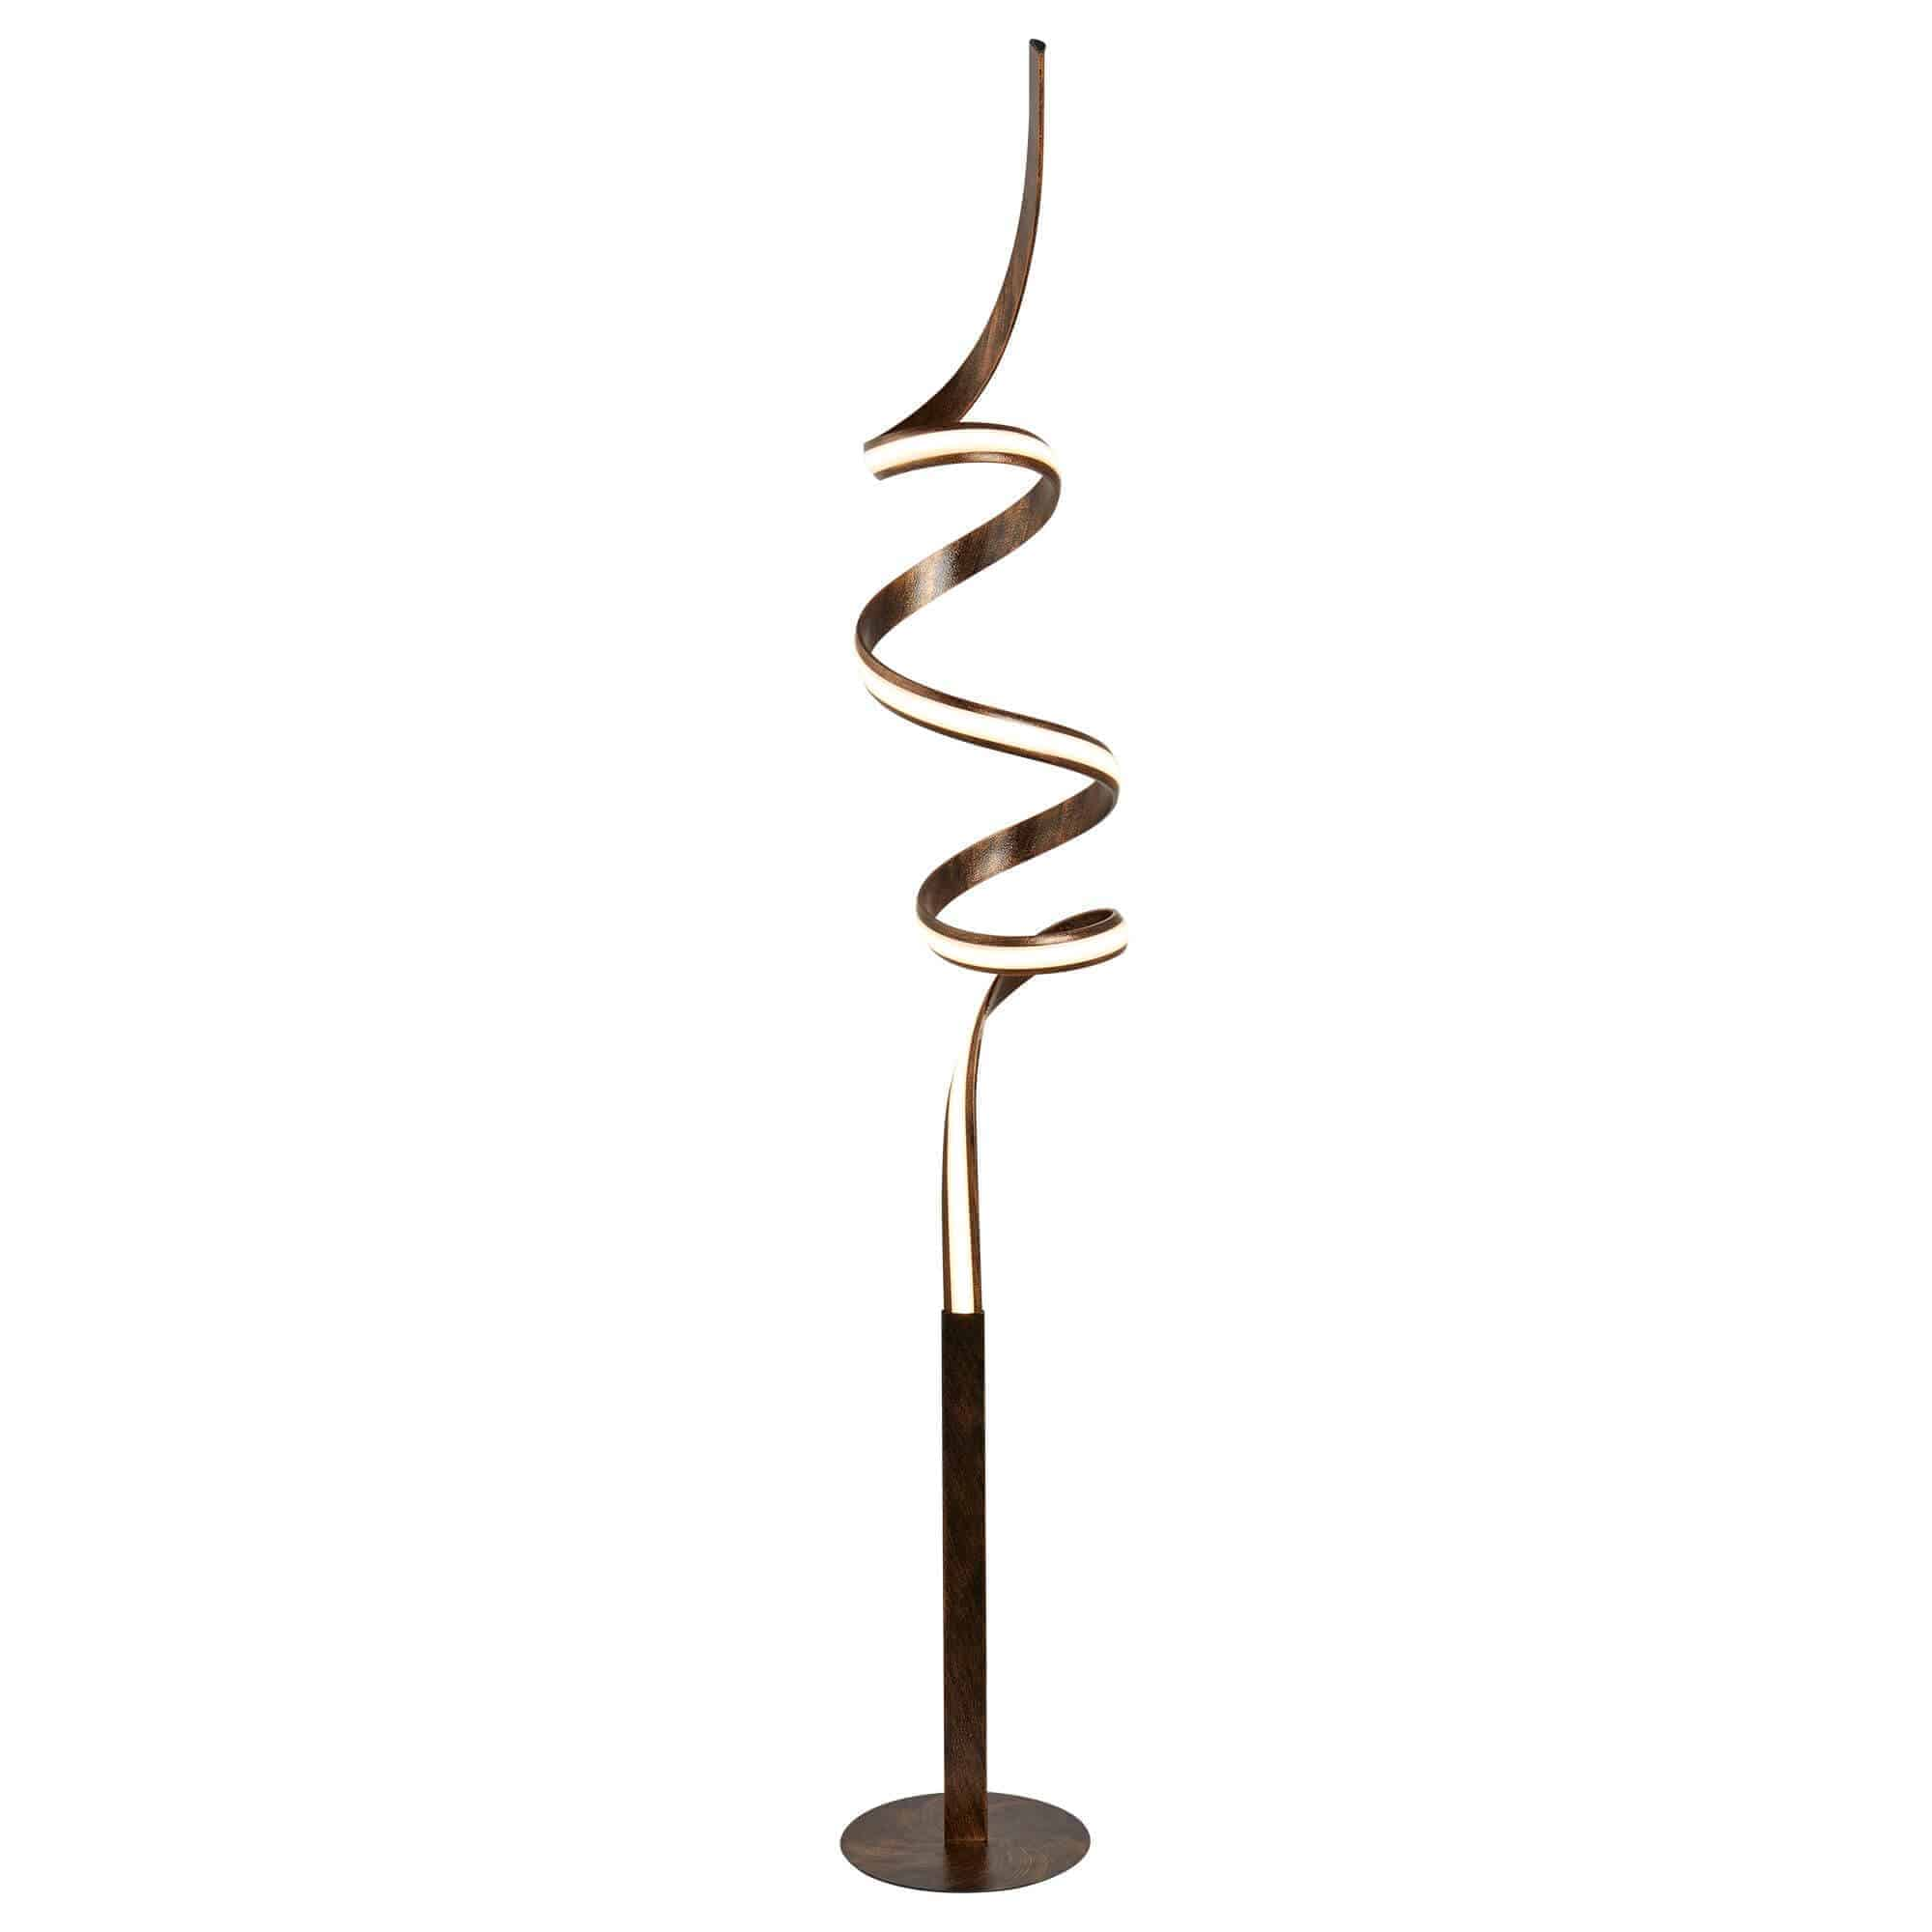 2813RU – Searchlight Ribbon Rustic Black & Gold LED Twist Floor Lamp